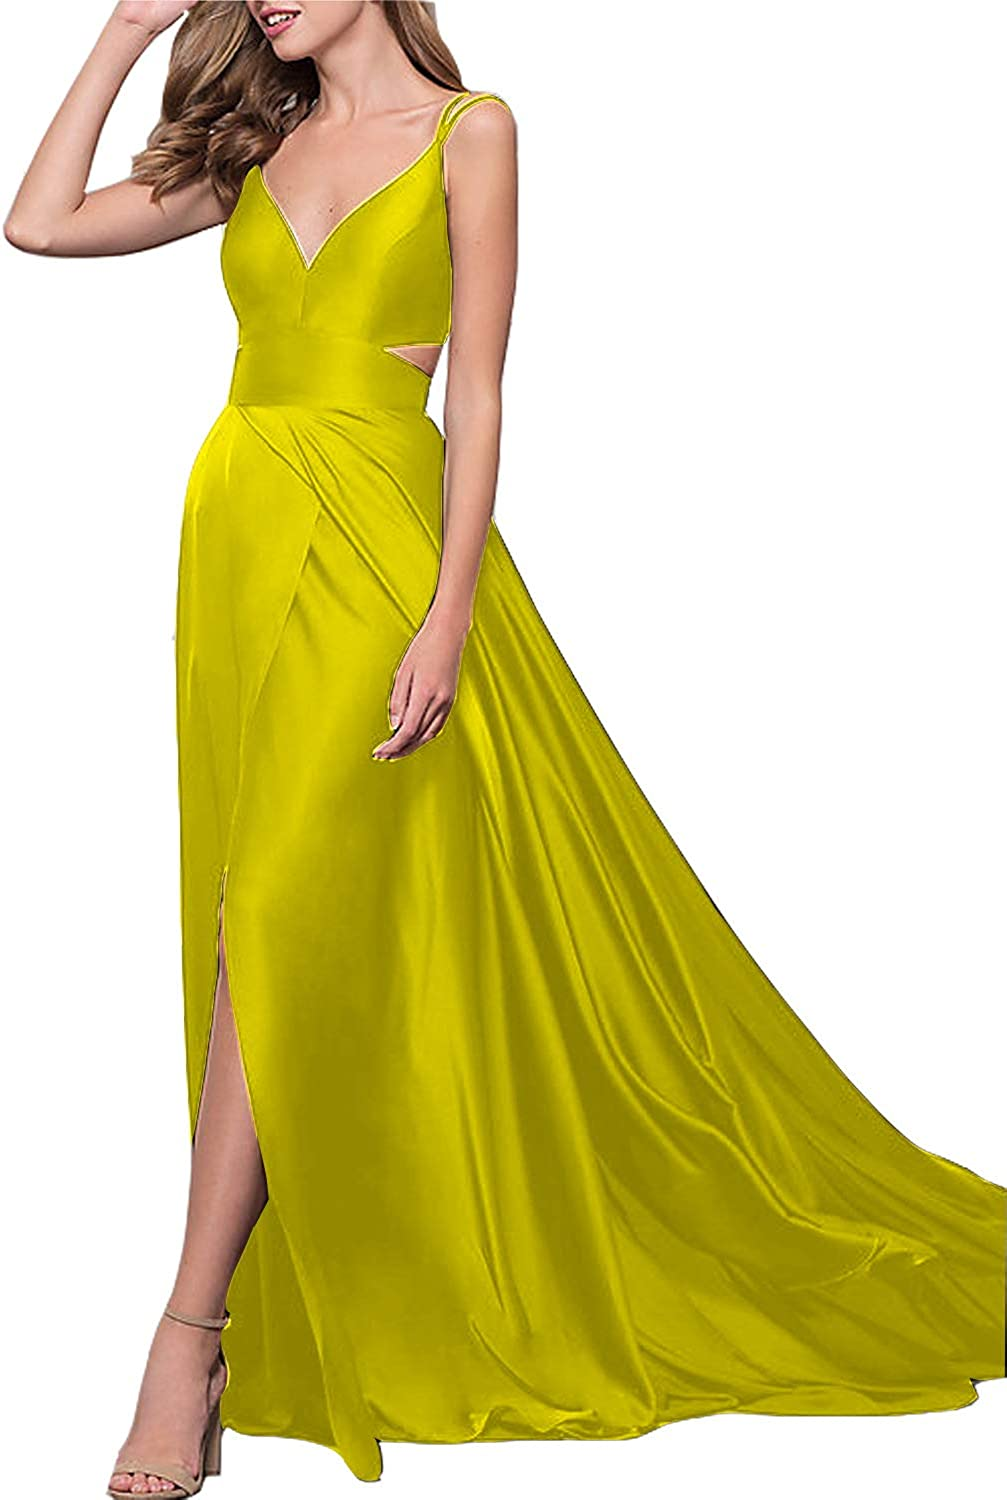 CCBubble Womens Long Satin Prom Dresses V Neck Spaghetti Straps Formal Evening Wedding Party Dress with Slit with Slit